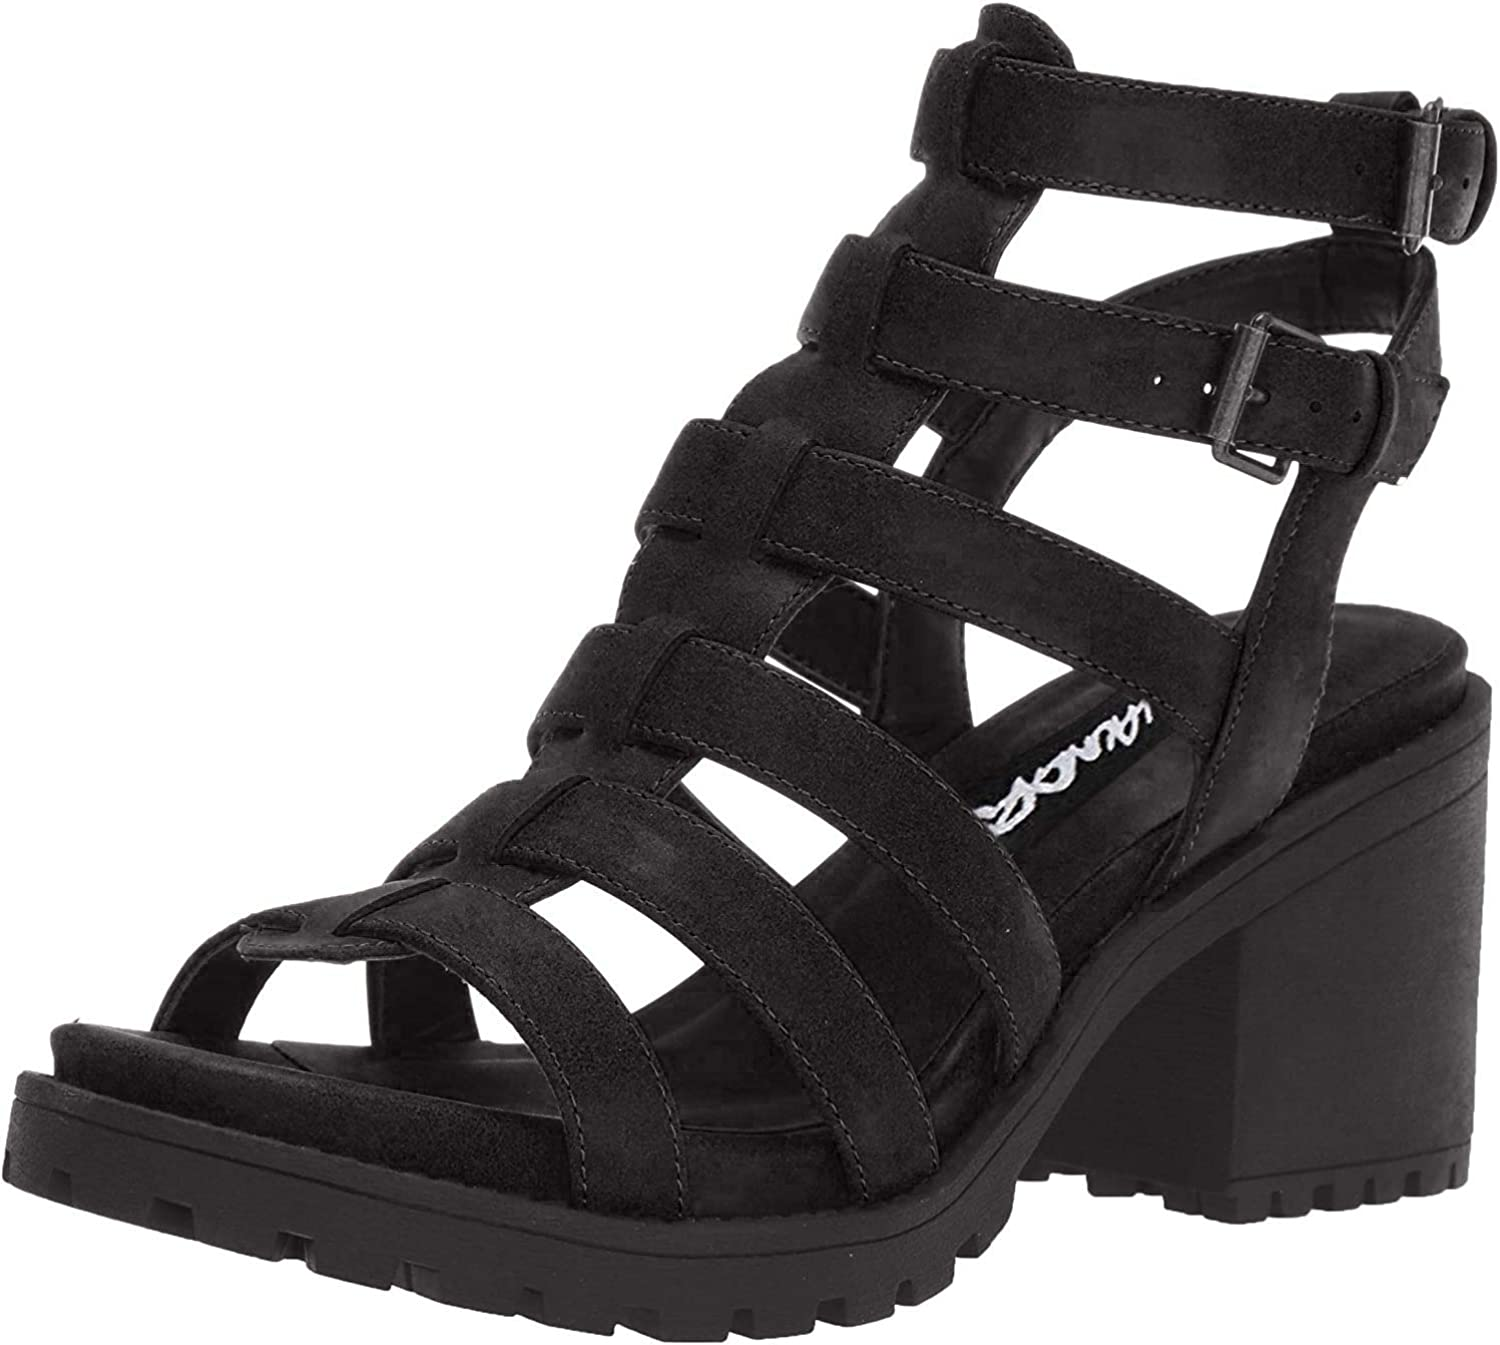 Dirty Laundry Women's Fun Stuff Heeled Sandal